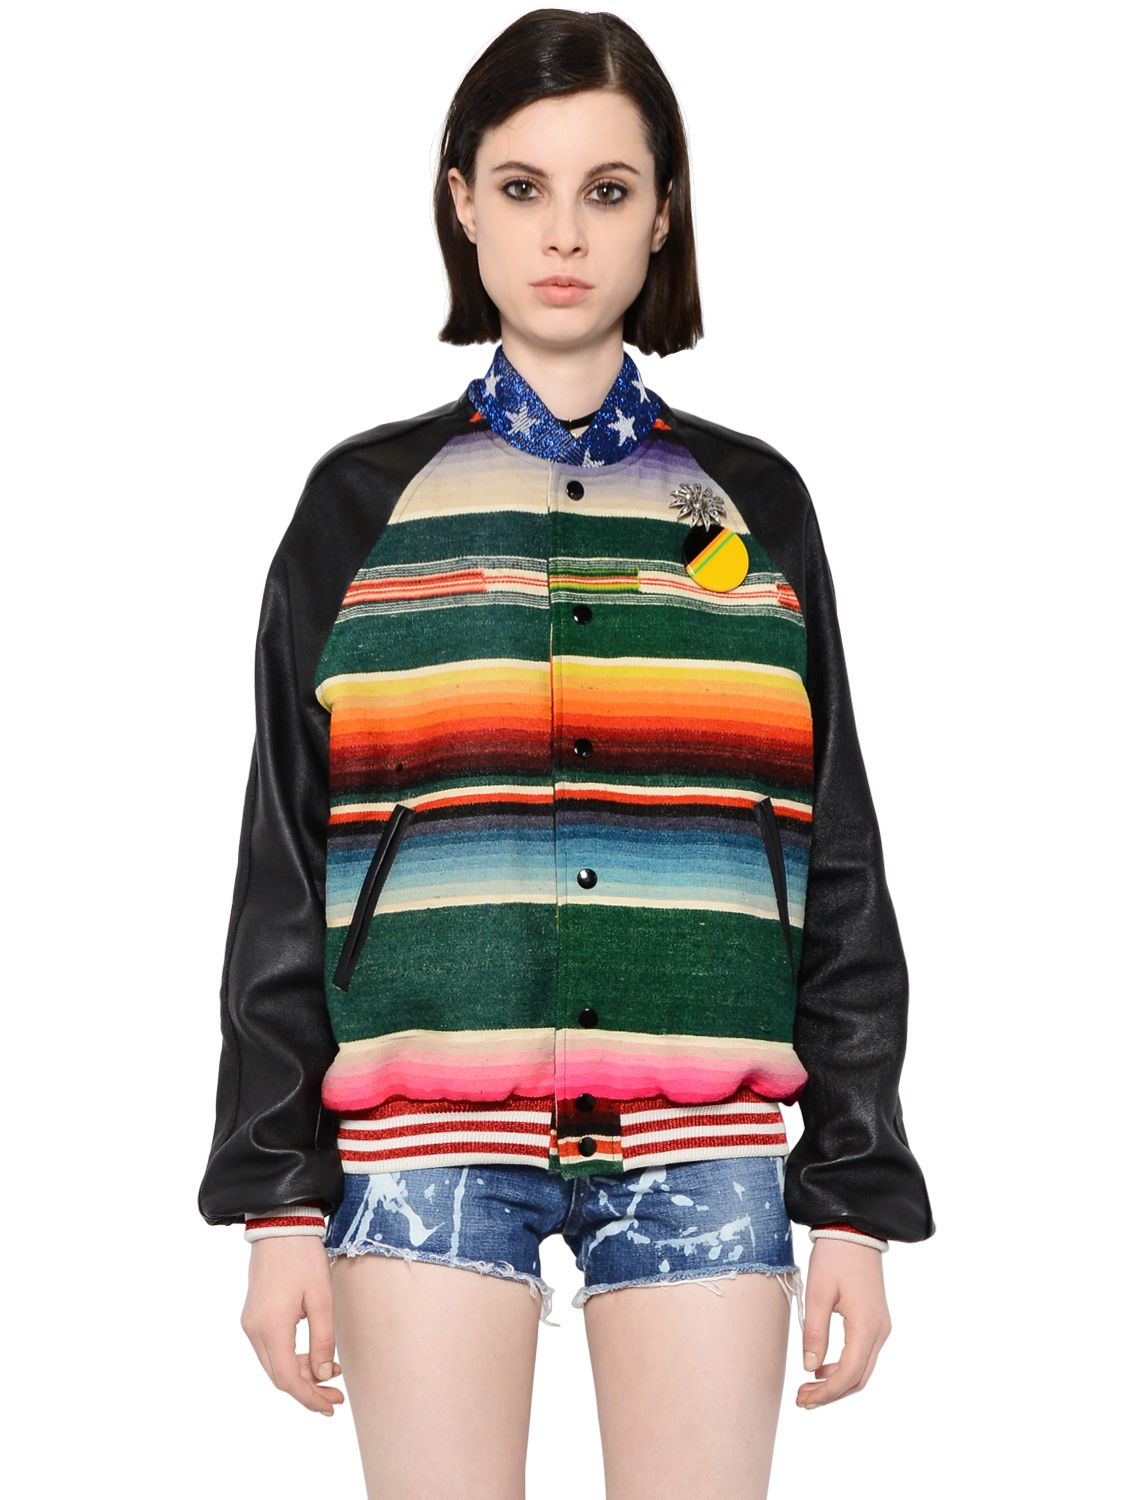 Saint laurent T-rex Tapestry \u0026amp; Leather Teddy Jacket in Multicolor ...